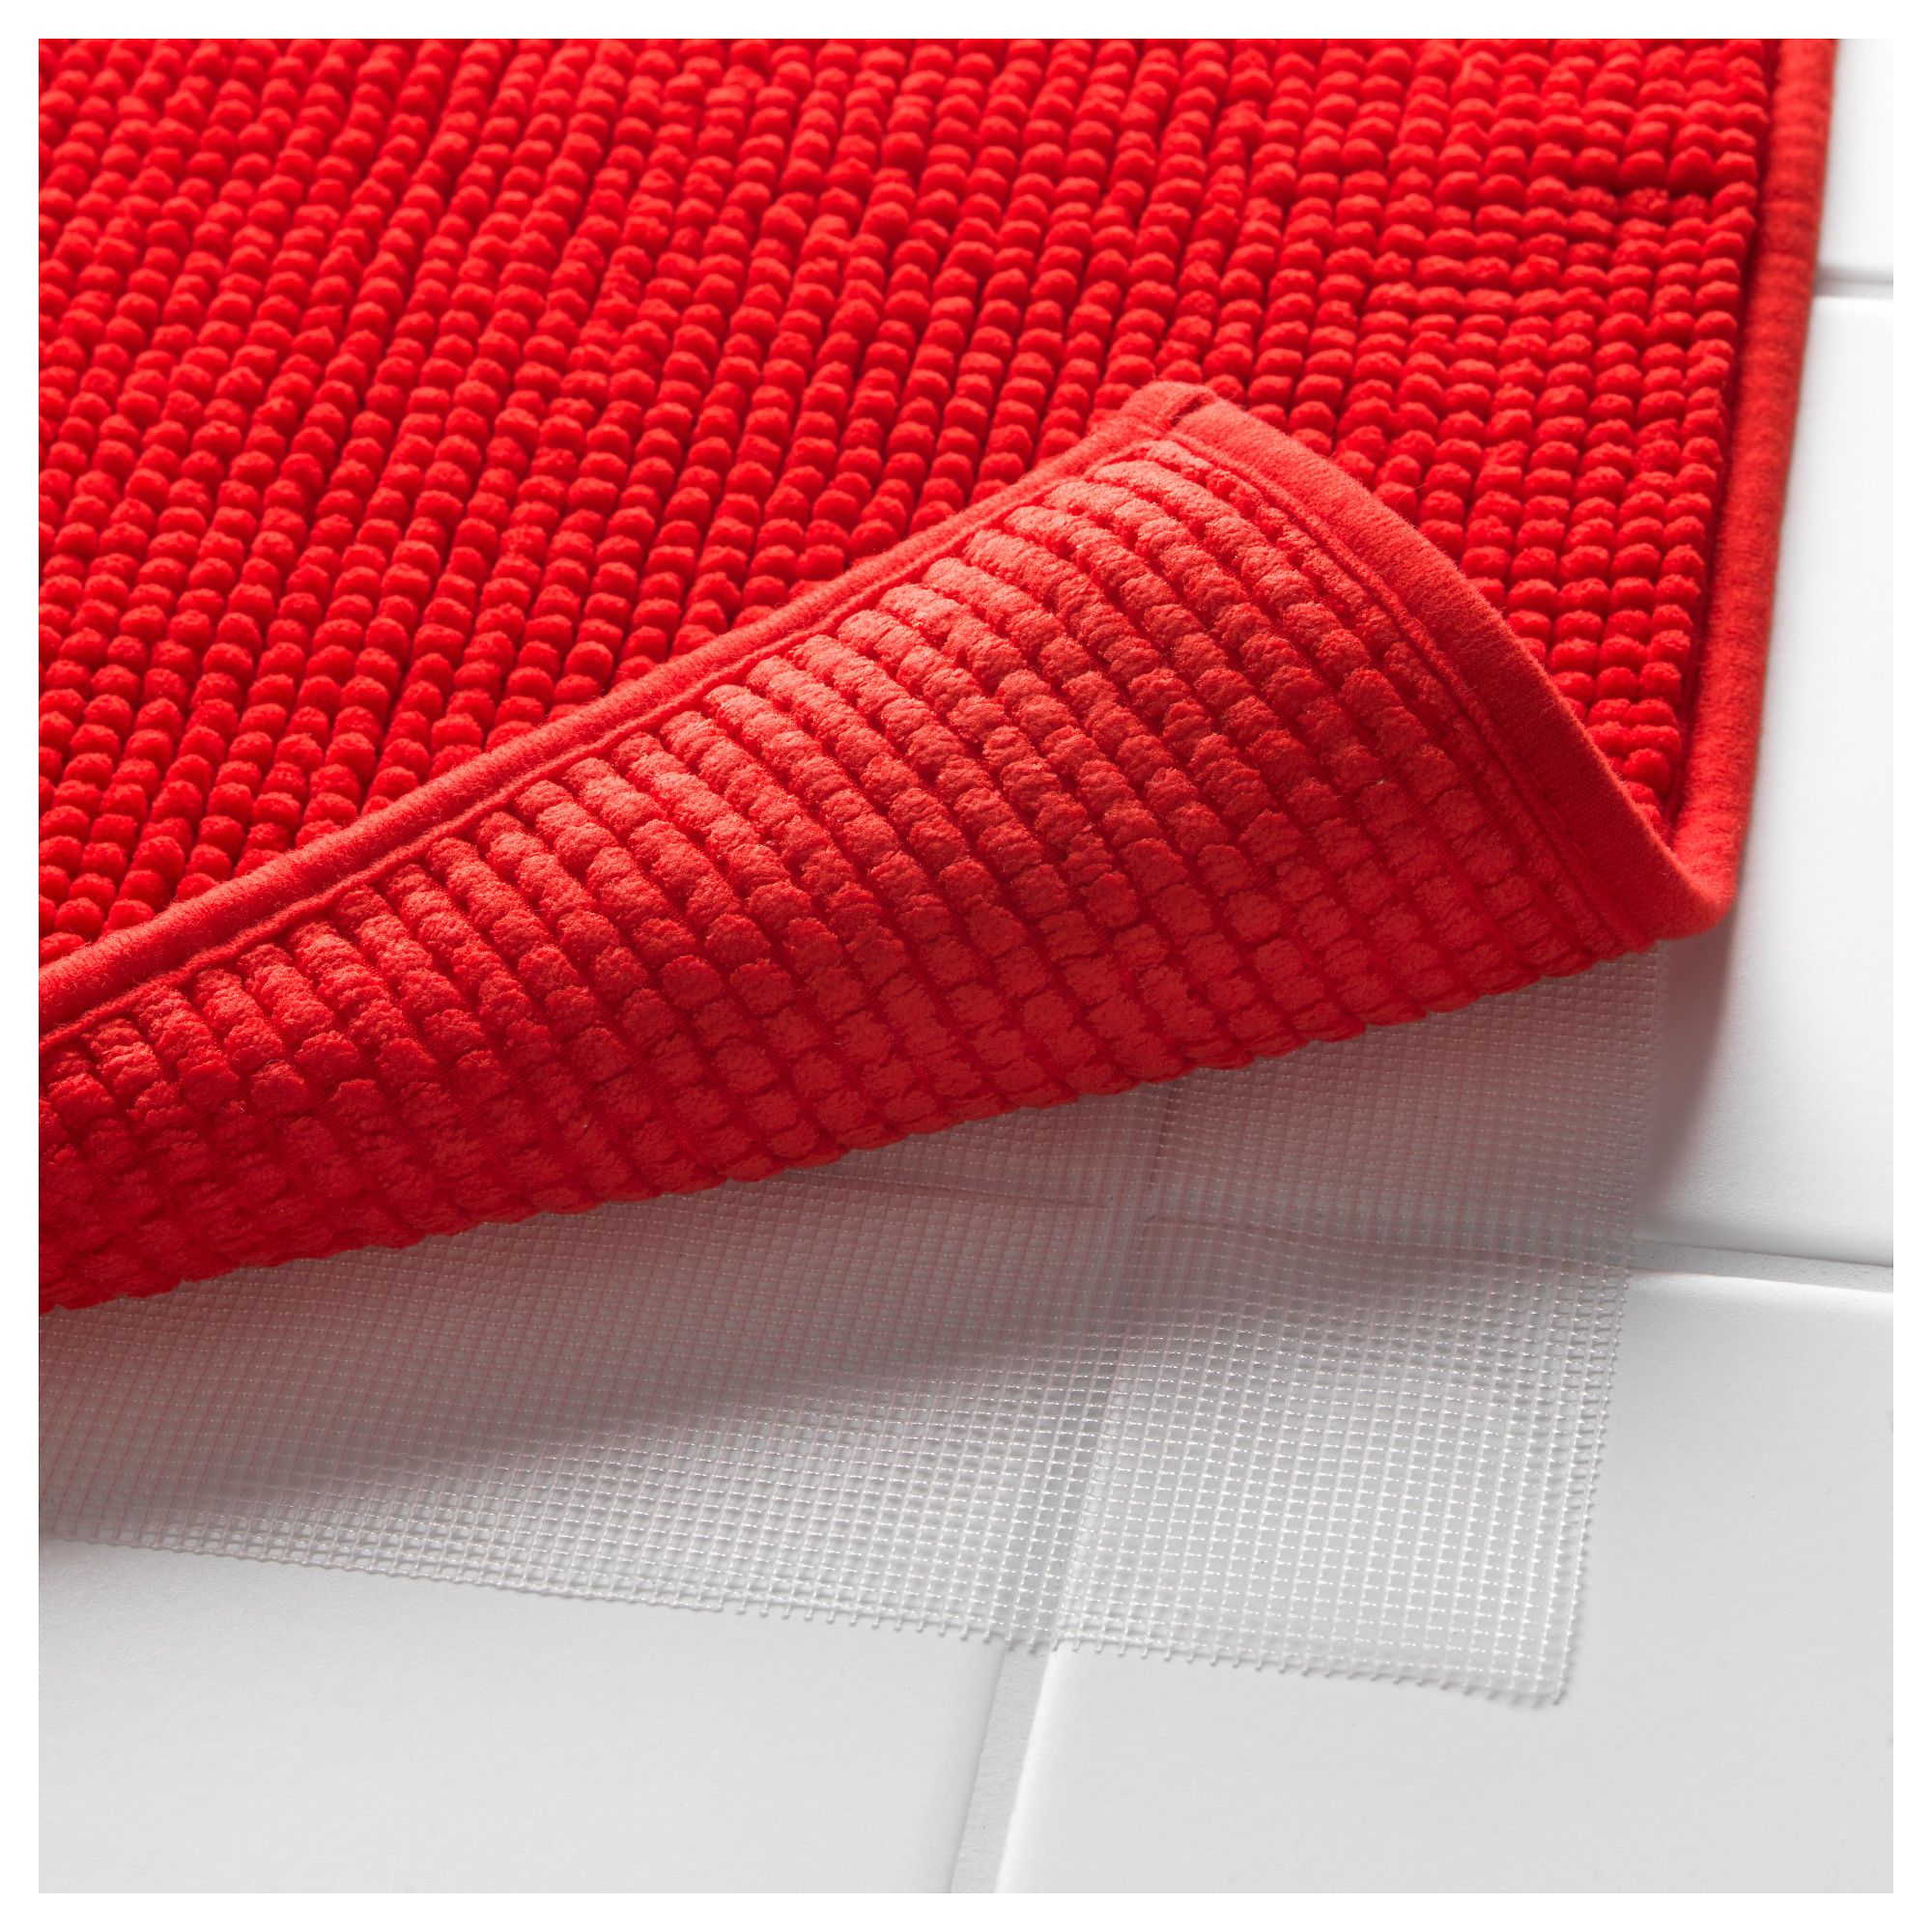 Lovely Red Bathroom Rug Red Bathroom Rugs Shower Bath Mats